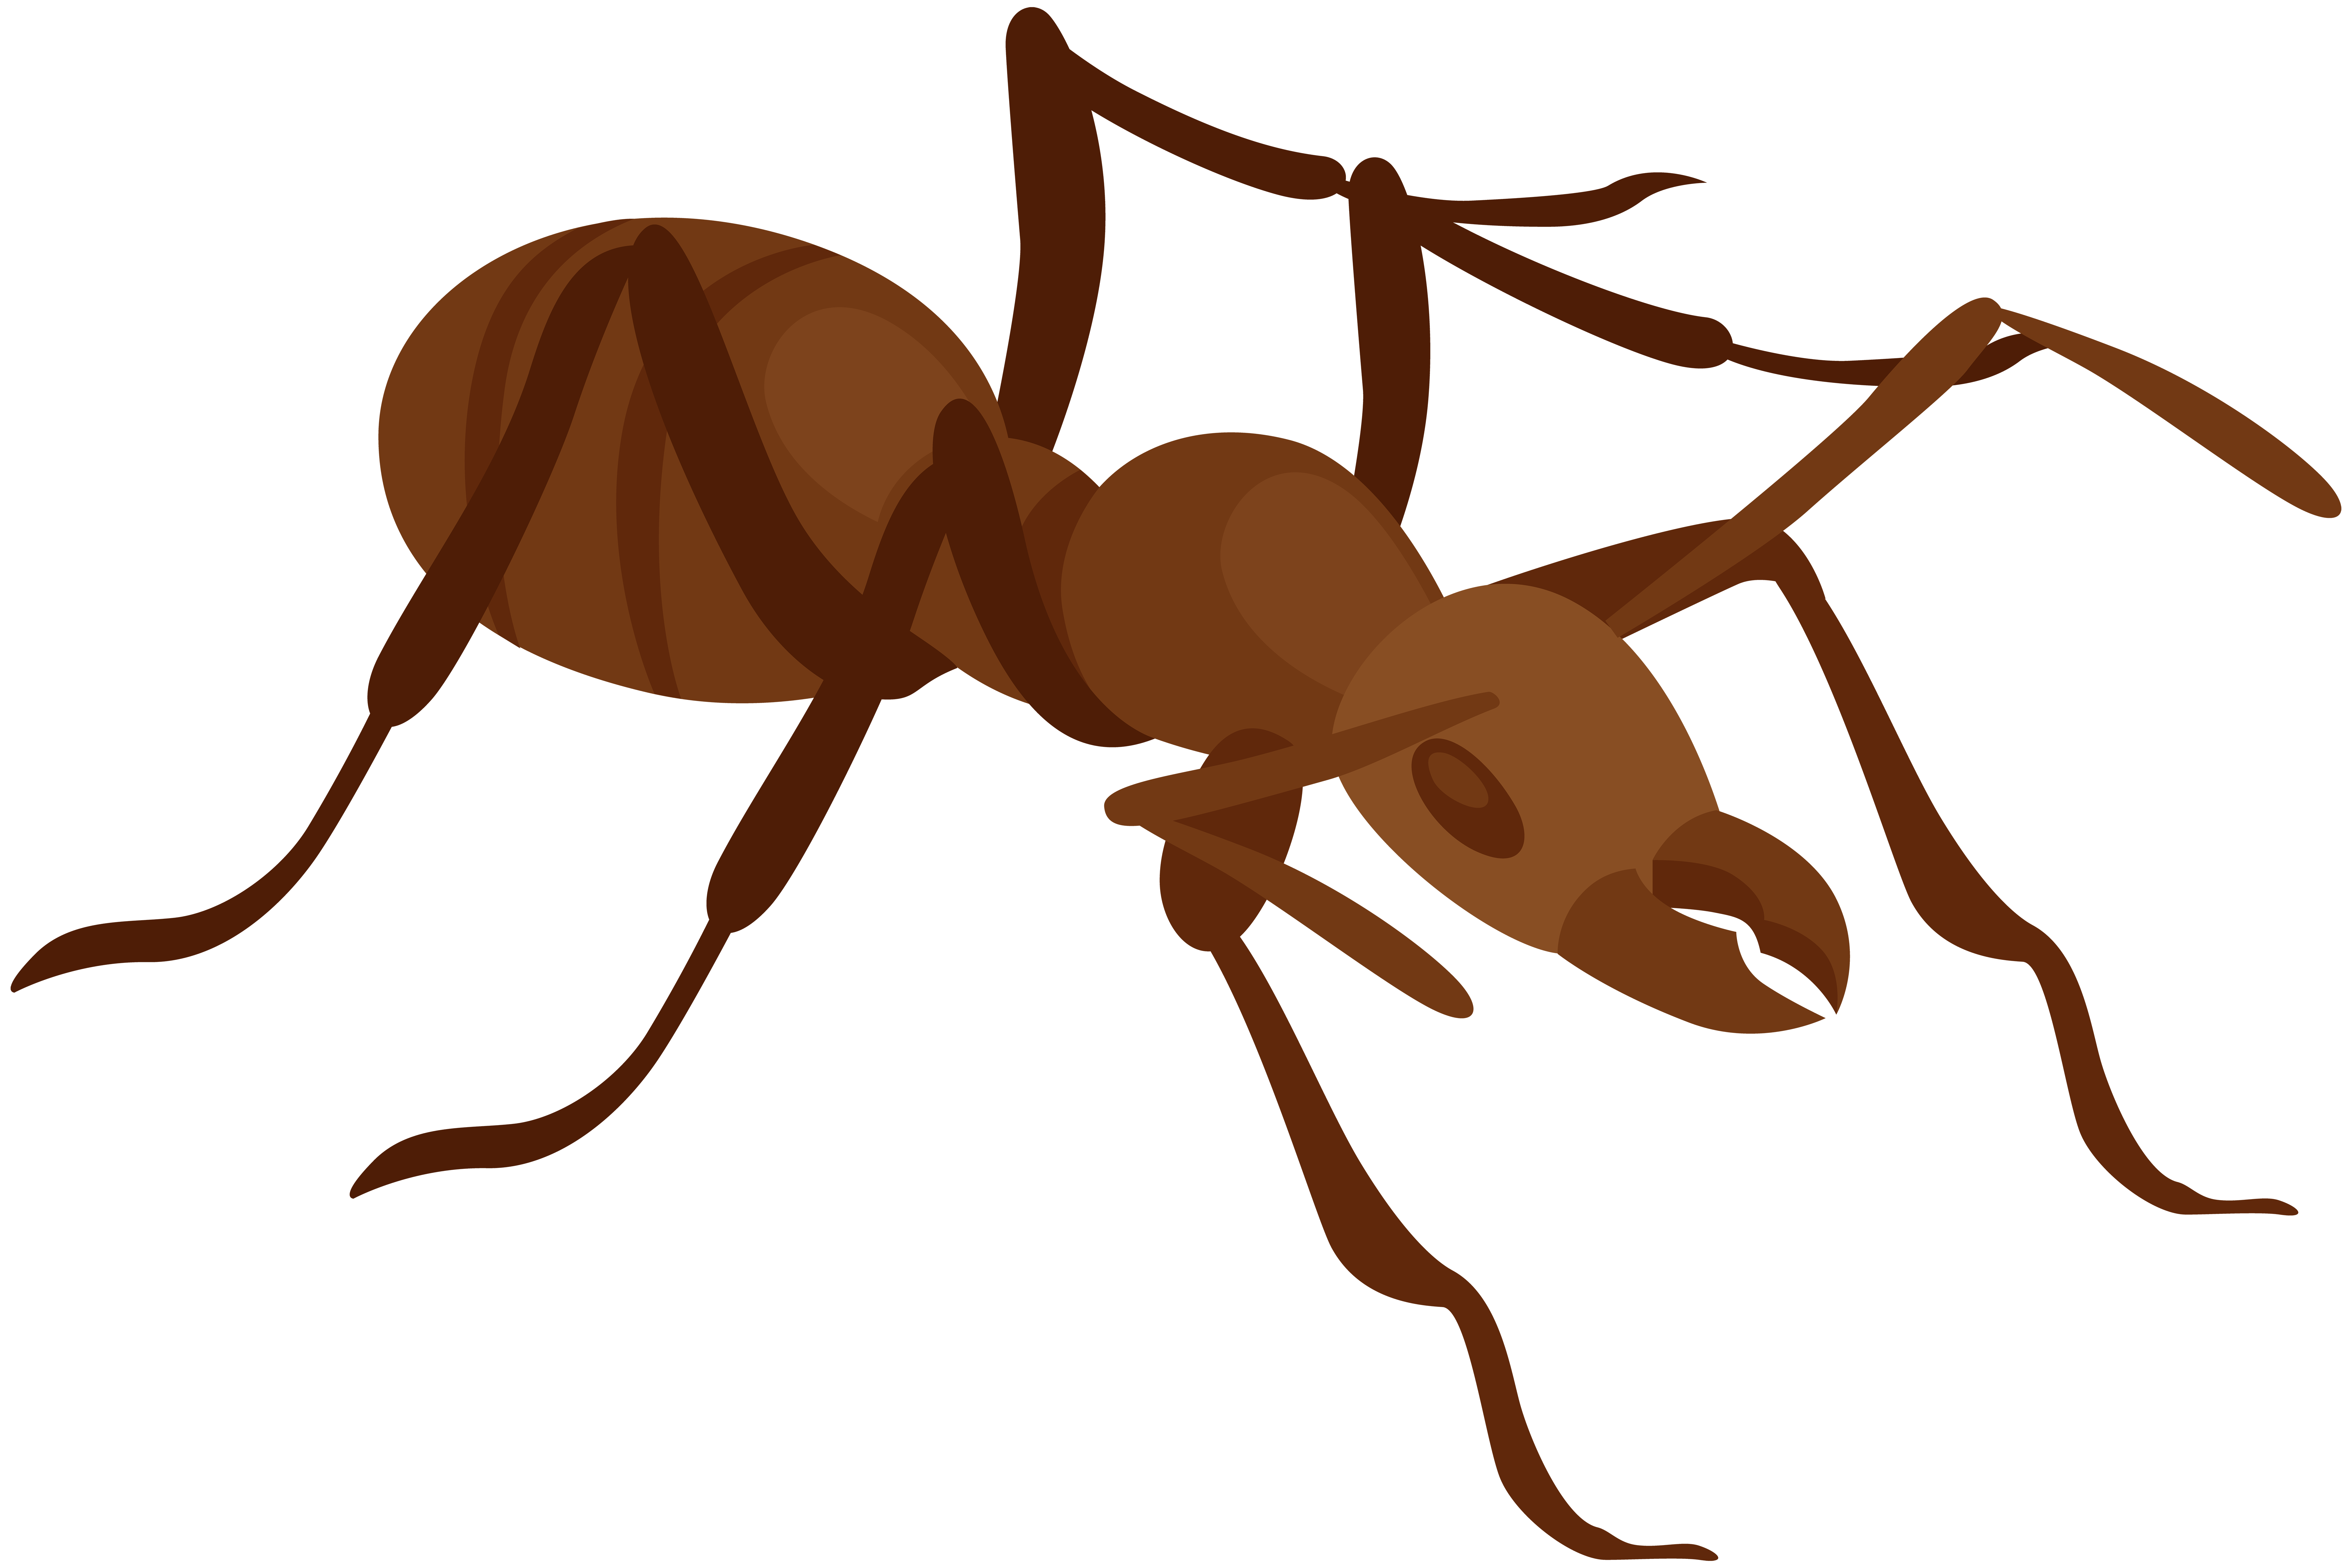 Ant png clip art. Ants clipart name